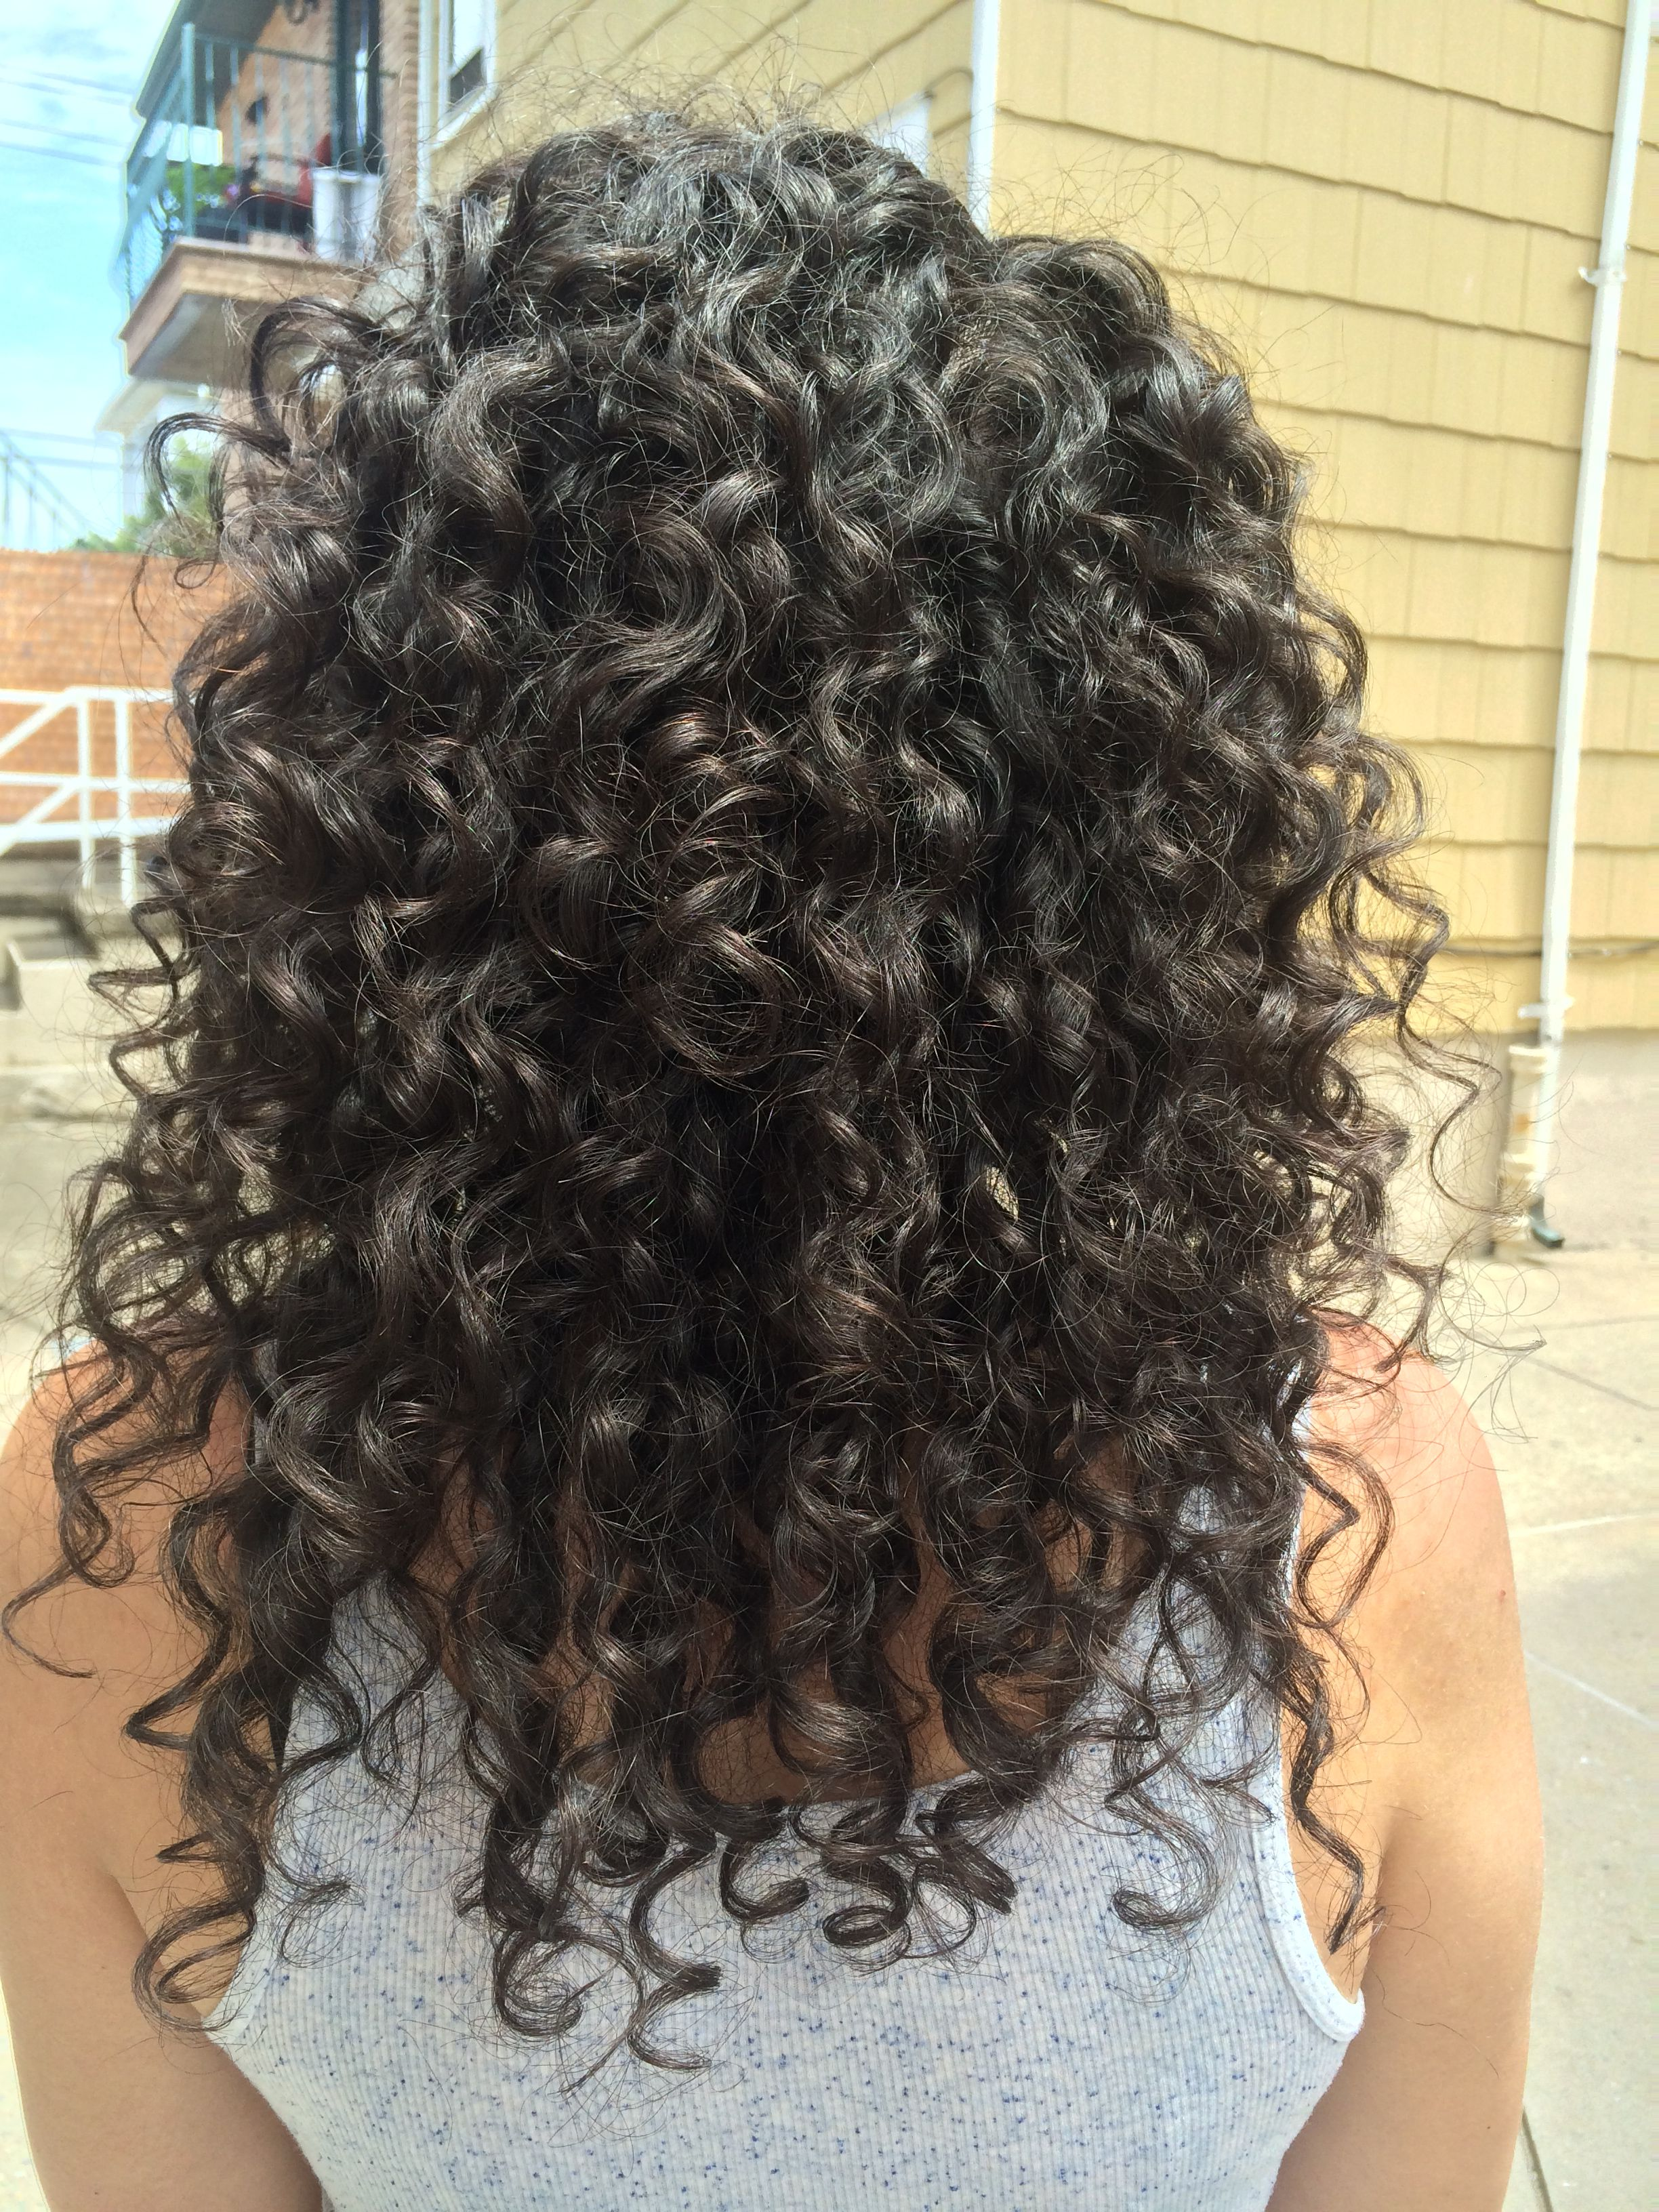 The Morning After My 1st Wash Style With The 3 Step Deva Curl Line Huge Difference My Hair Already Looks Hair Curly Hair Care Curly Hair Styles Naturally